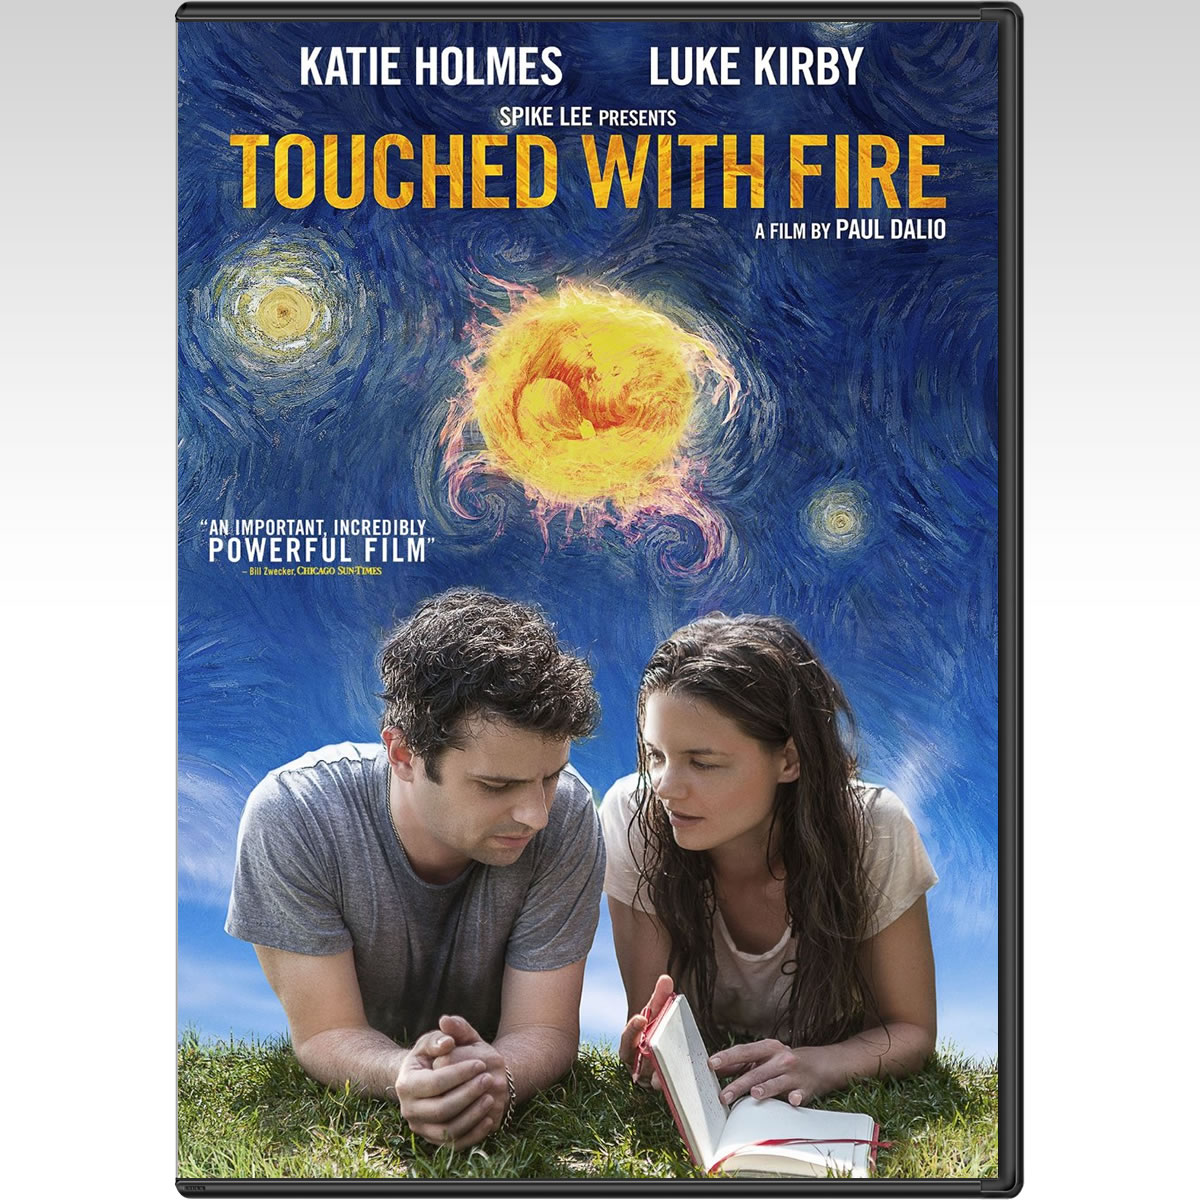 TOUCHED WITH FIRE - ΤΑ ΔΥΟ ΠΡΟΣΩΠΑ ΤΟΥ ΕΡΩΤΑ (DVD)